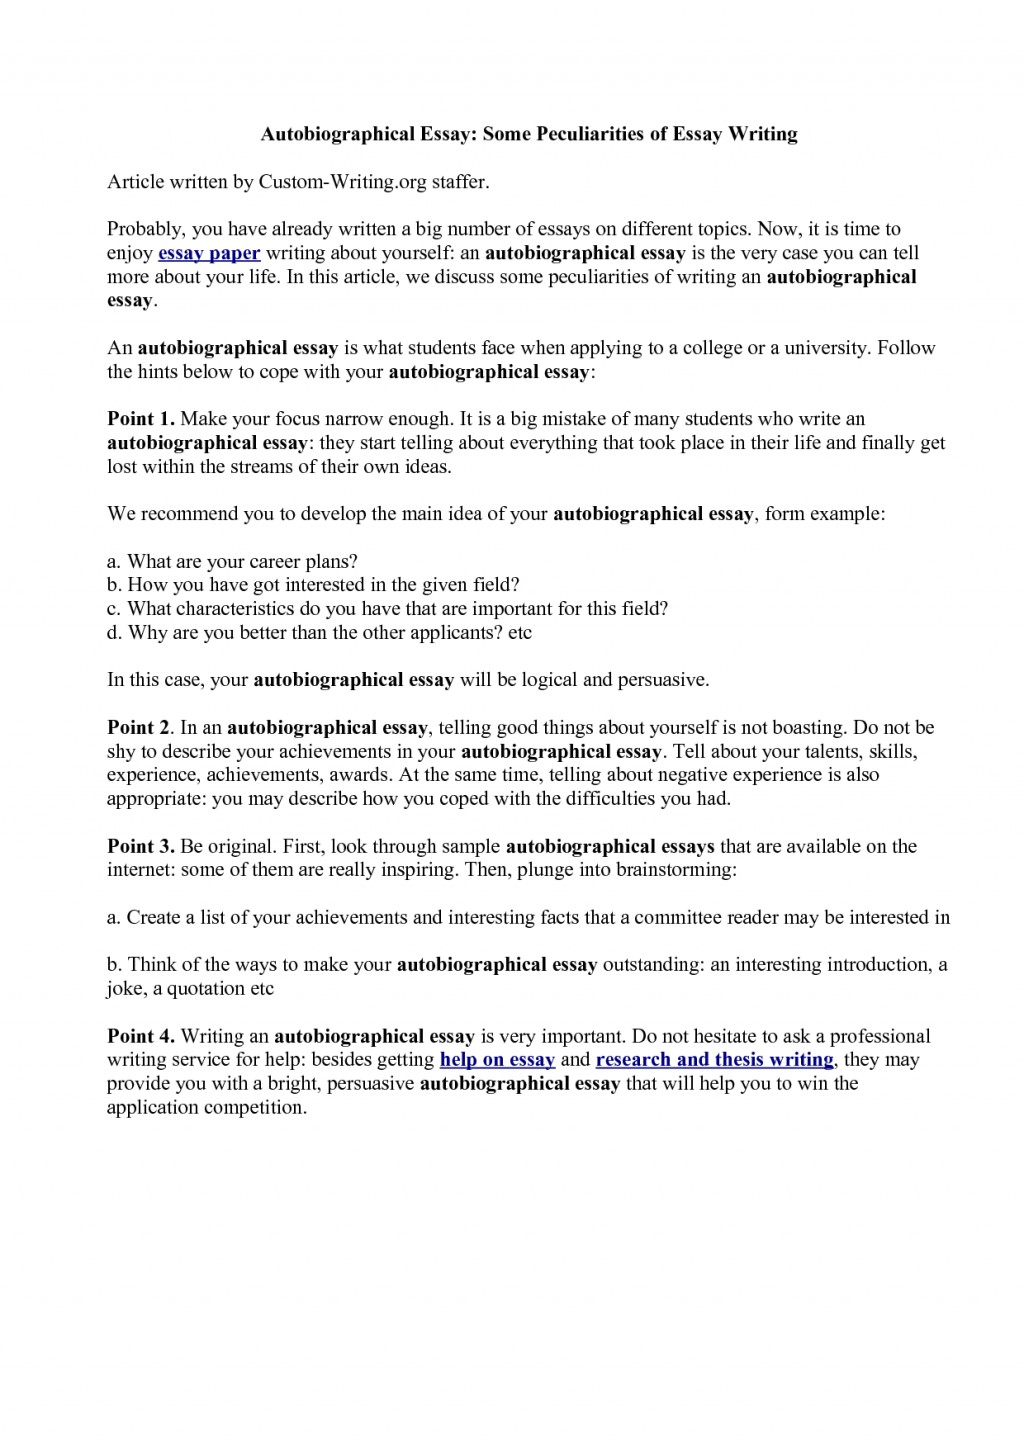 027 Essay Example Autobiography Of Telling About Yourself Luxury Unique For Highschool Students Pdf Bibliography Examples Large